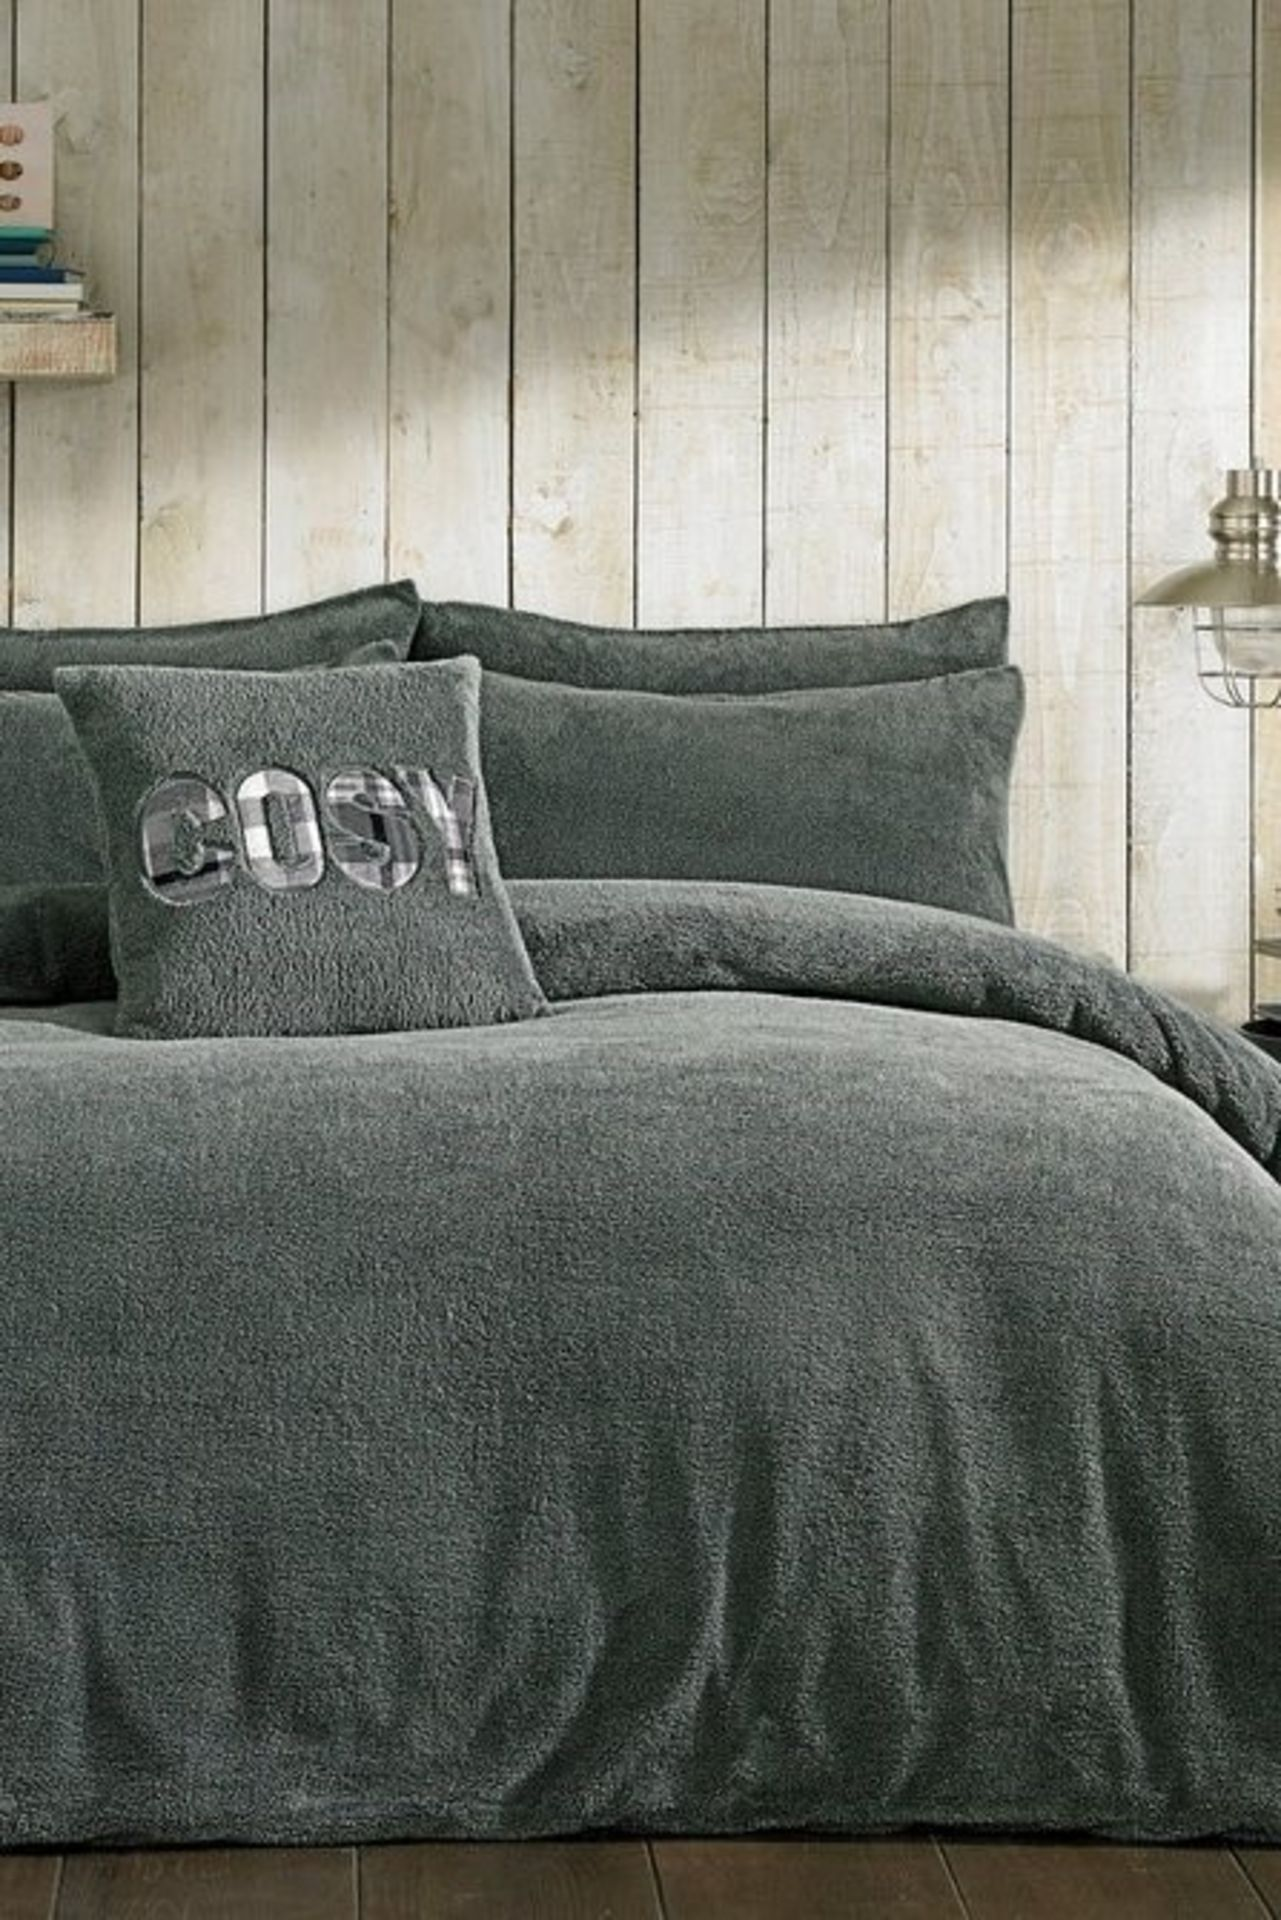 Lot 42 - 1 AS NEW BAGGED COSY TEDDY FITTED SHEET IN CHARCOAL GREY / SIZE: SINGLE / RRP £26.99 (PUBLIC VIEWING